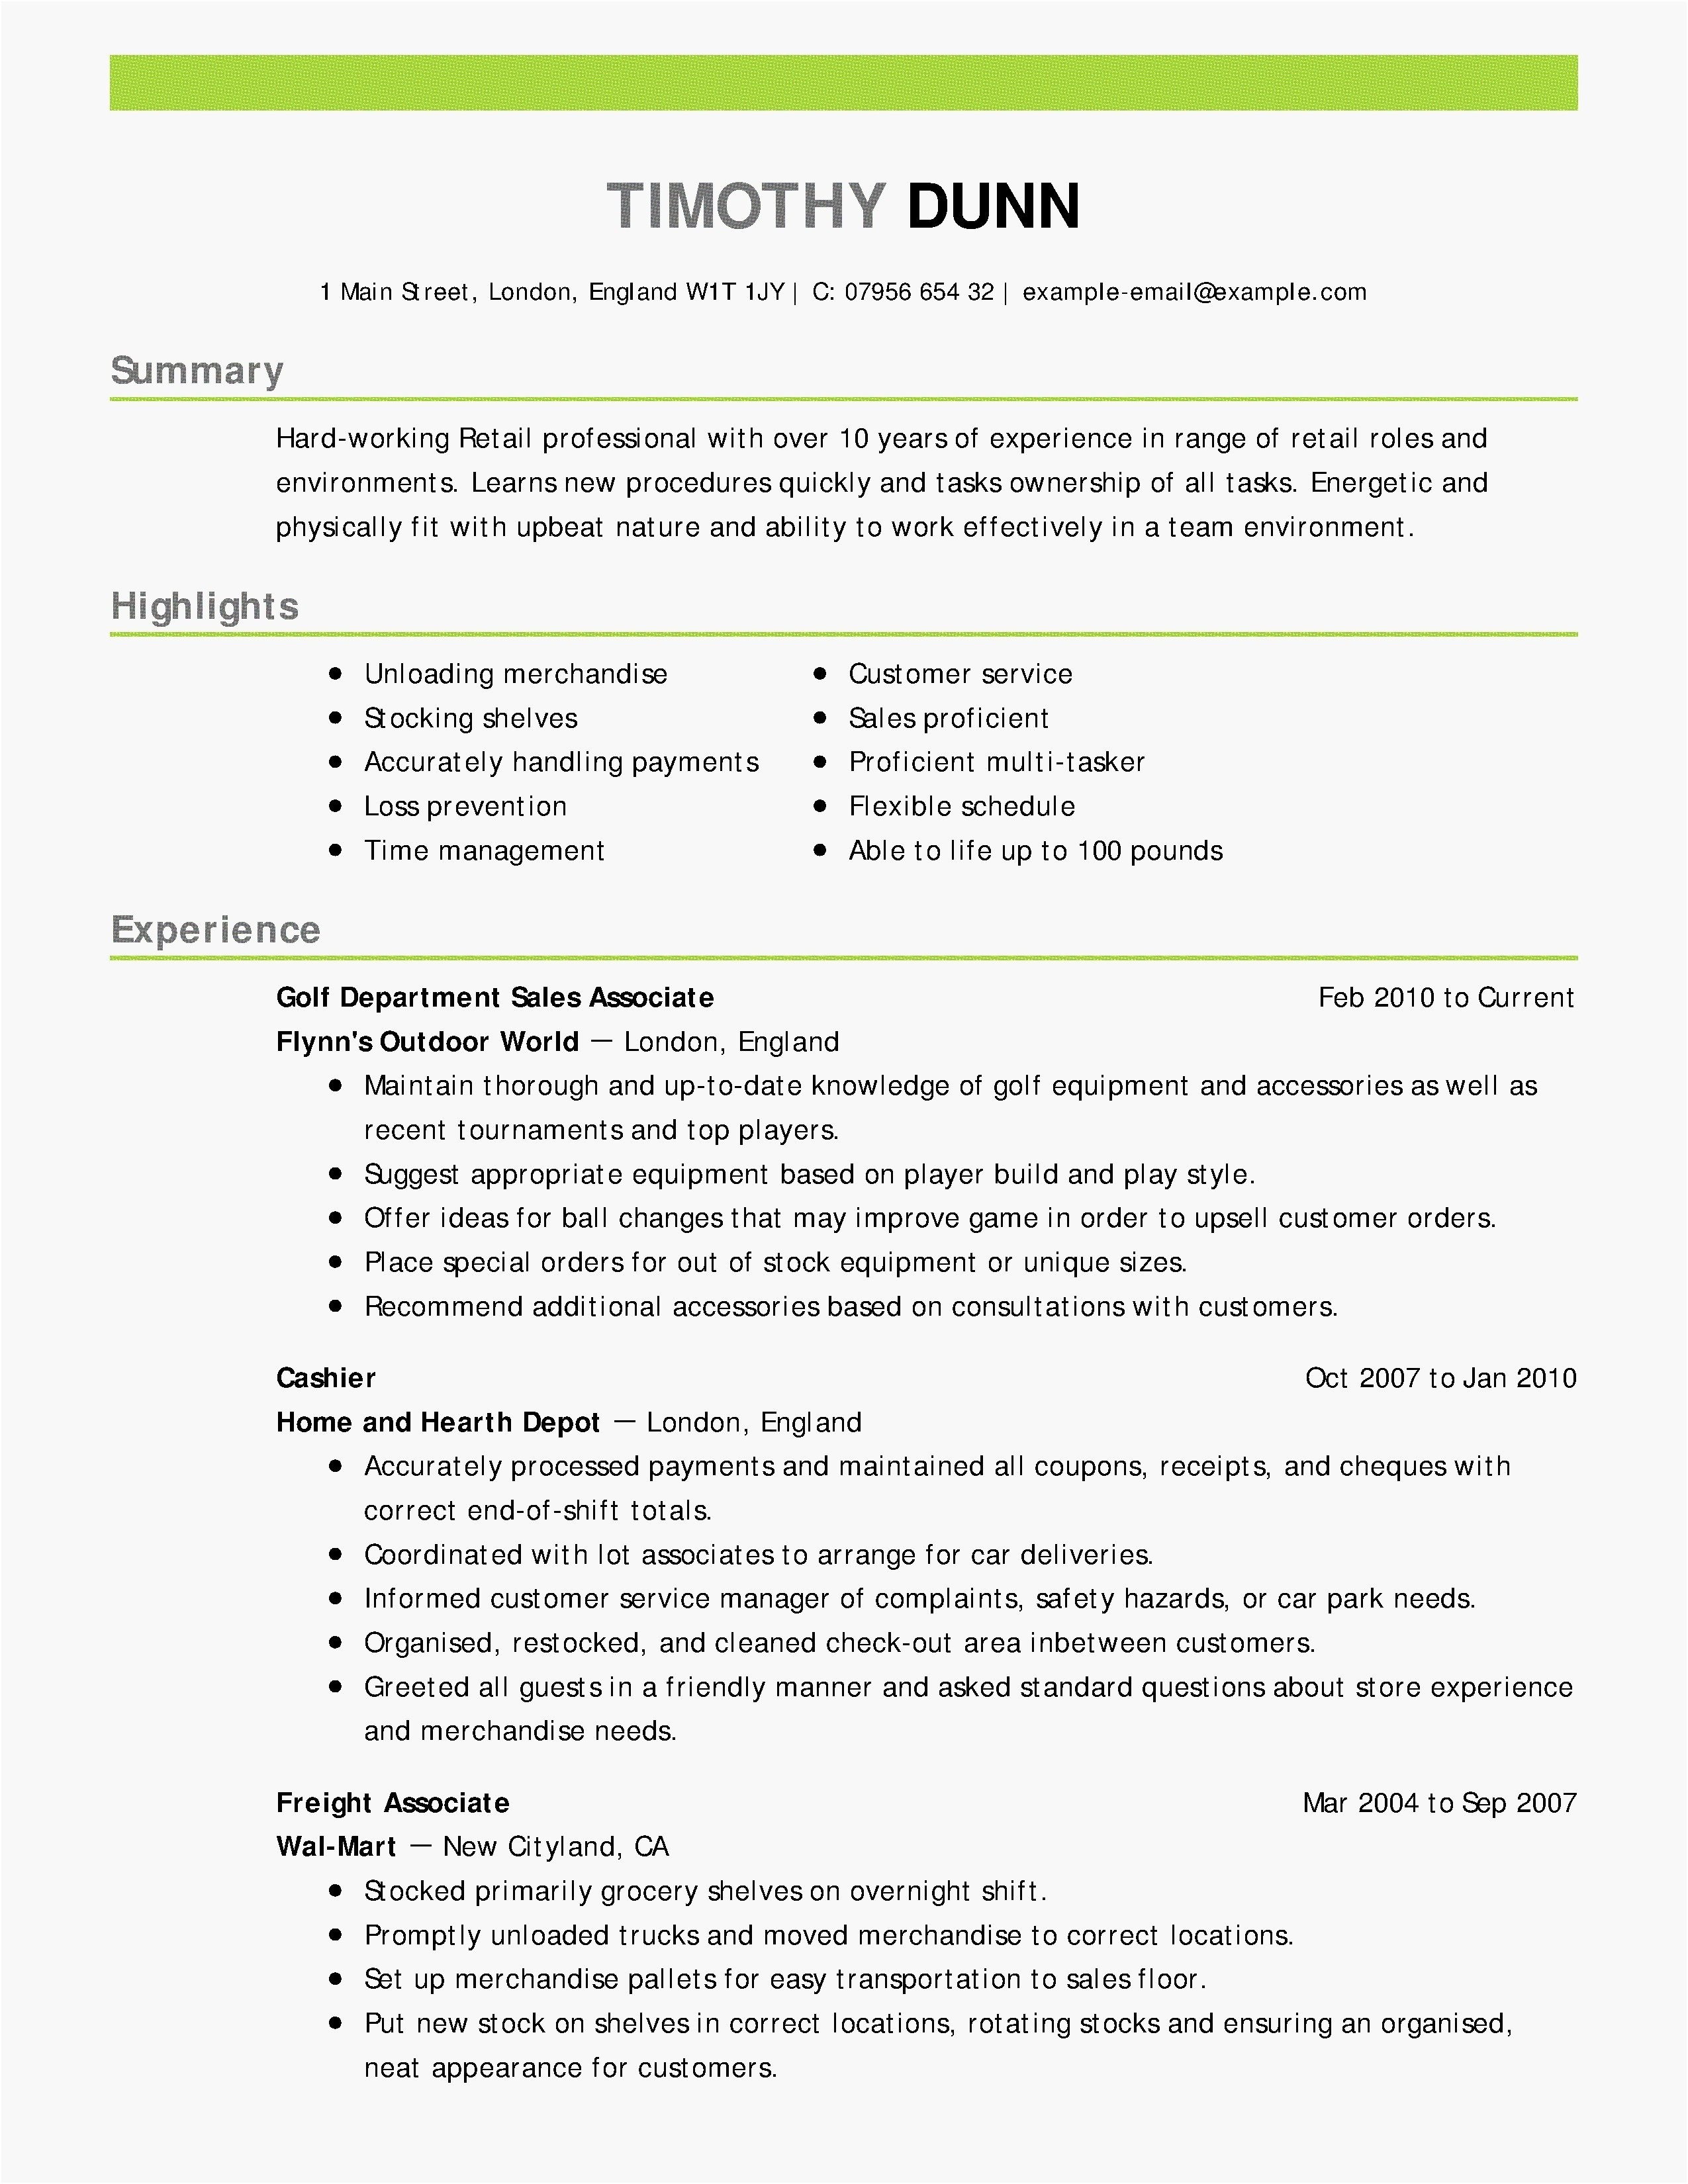 Resume for Correctional Officer - Correctional Ficer Resume Correction Ficer Resume Colbro Co